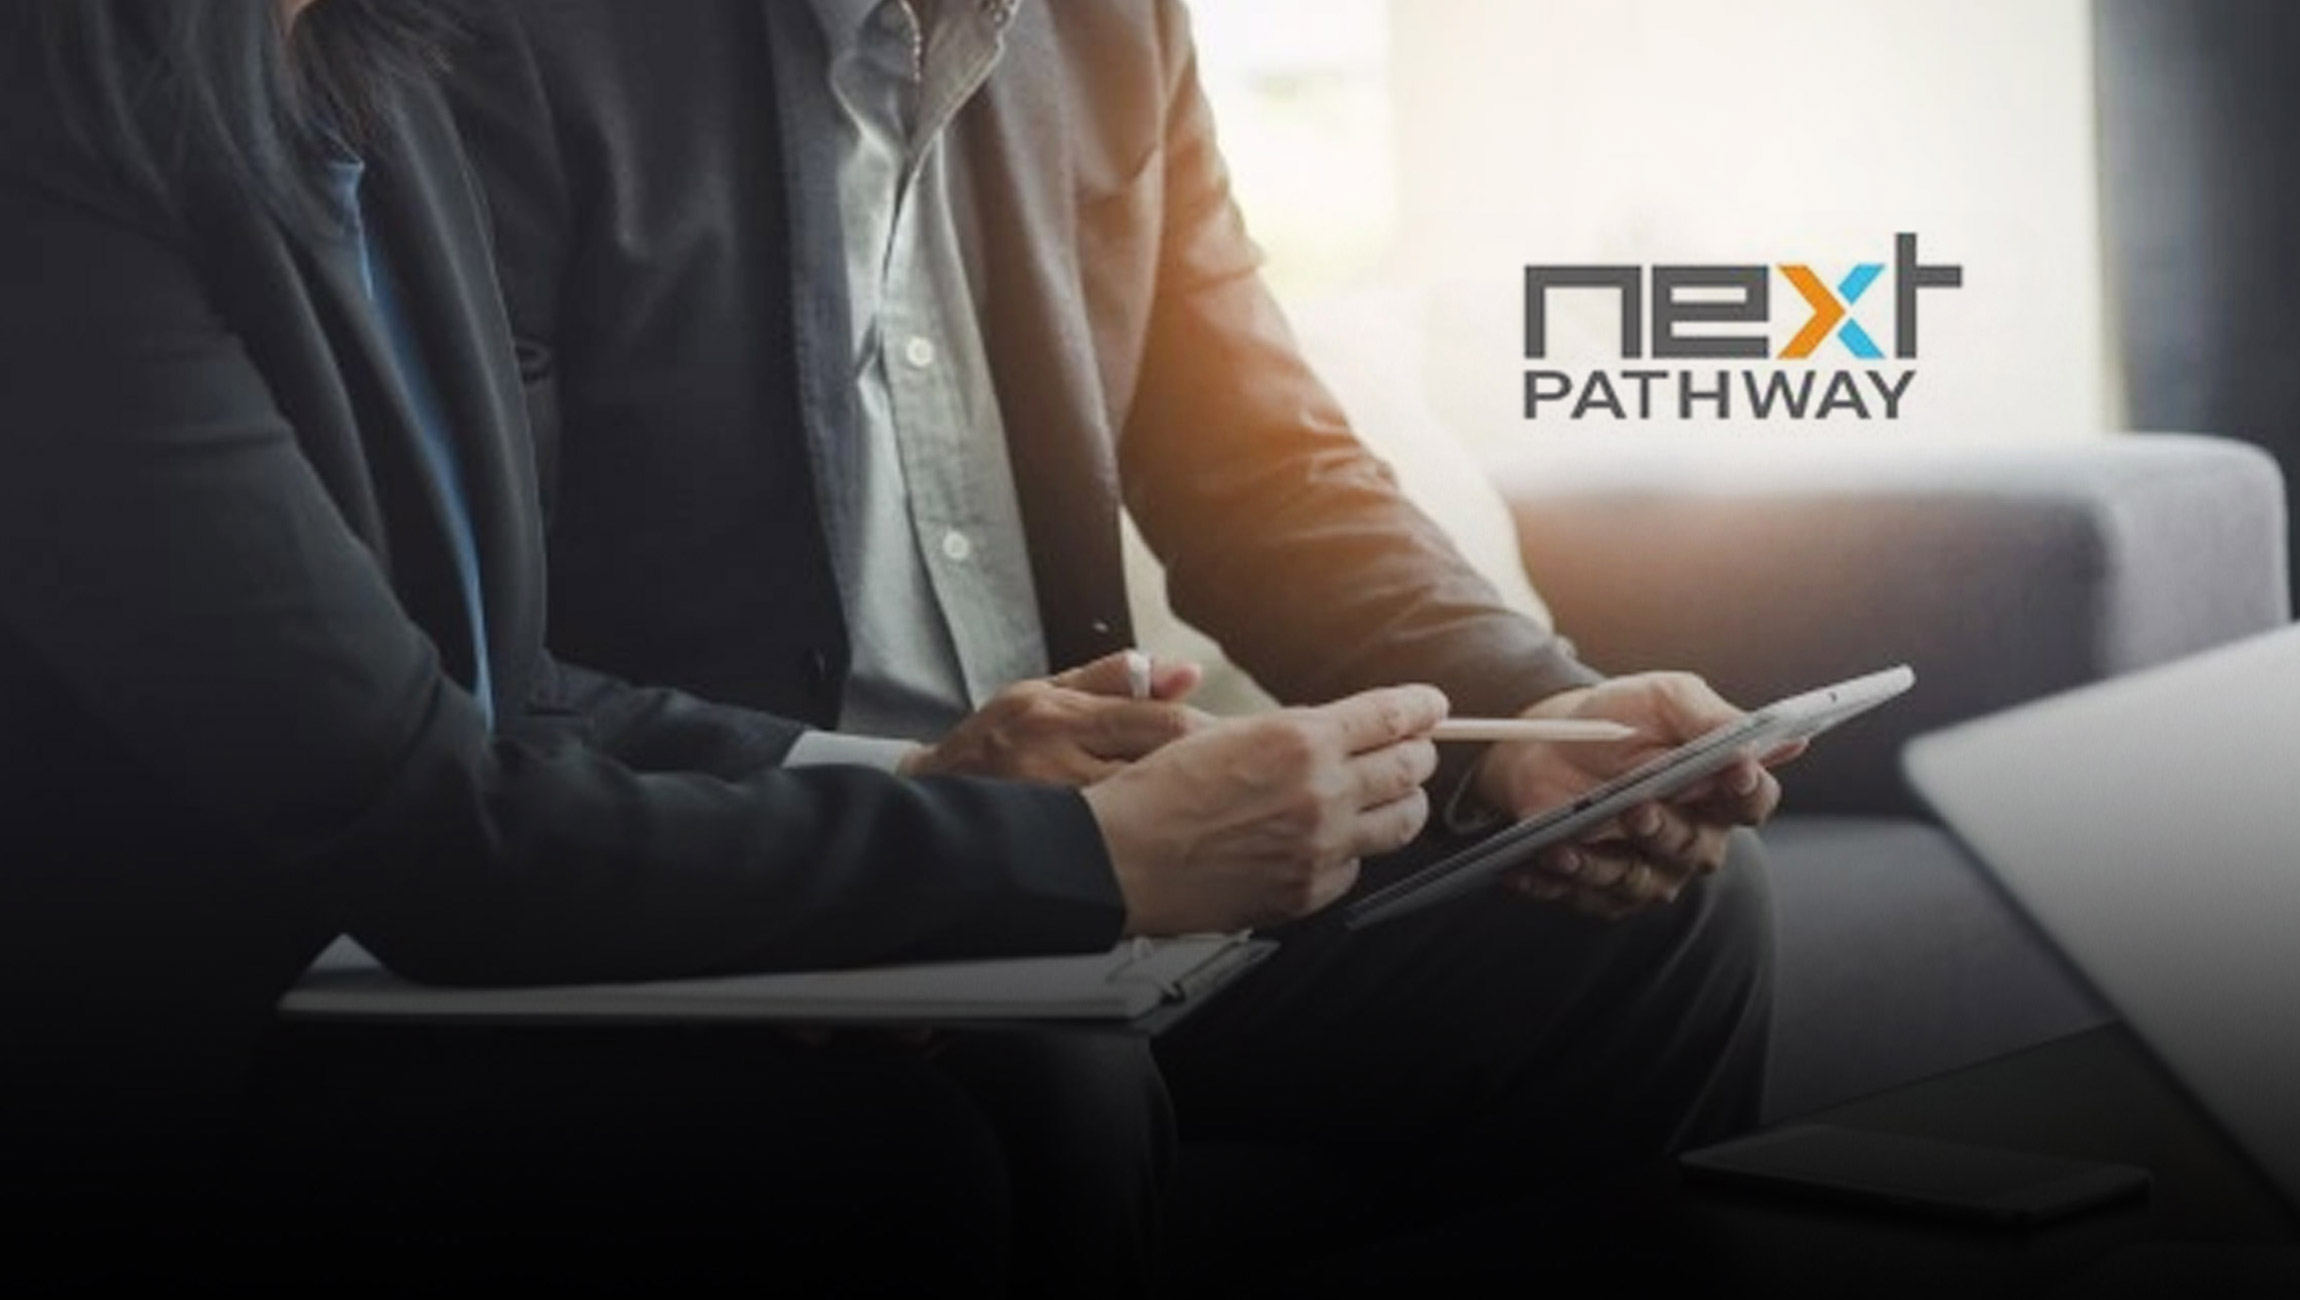 Competitive Advantage and Better Customer Experience Drives Cloud Migration Push, Next Pathway Research Reveals